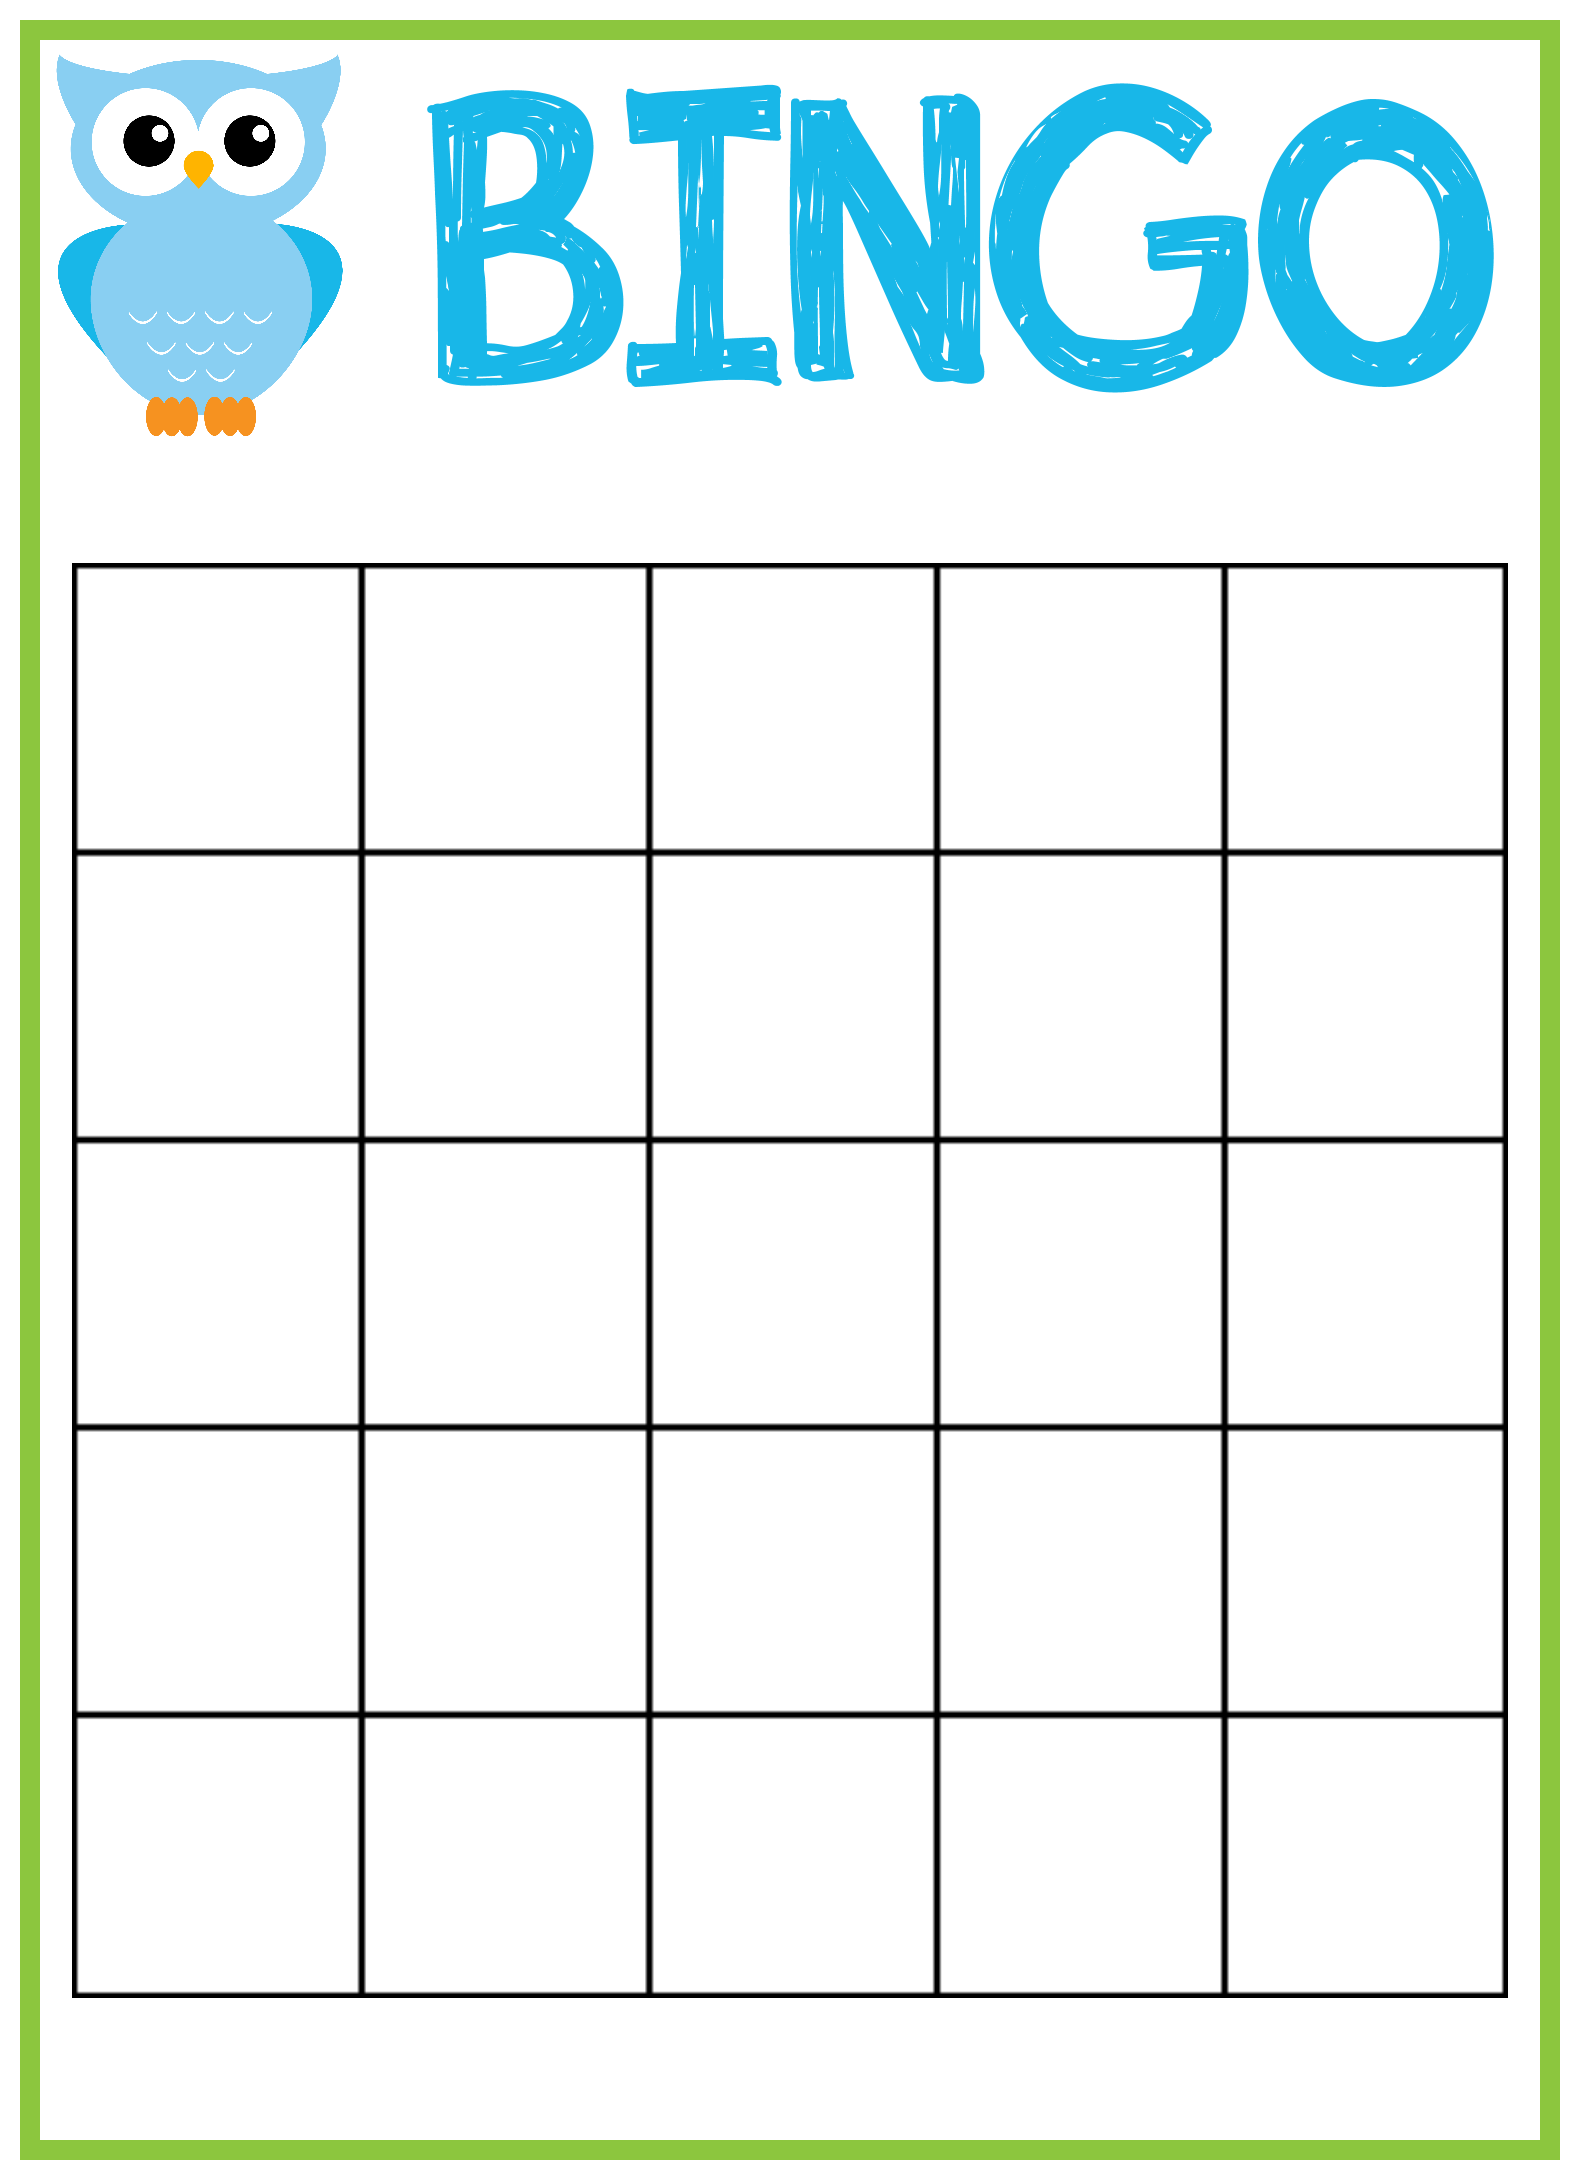 Baby shower bingo cards uk | Transamerican Auto Parts